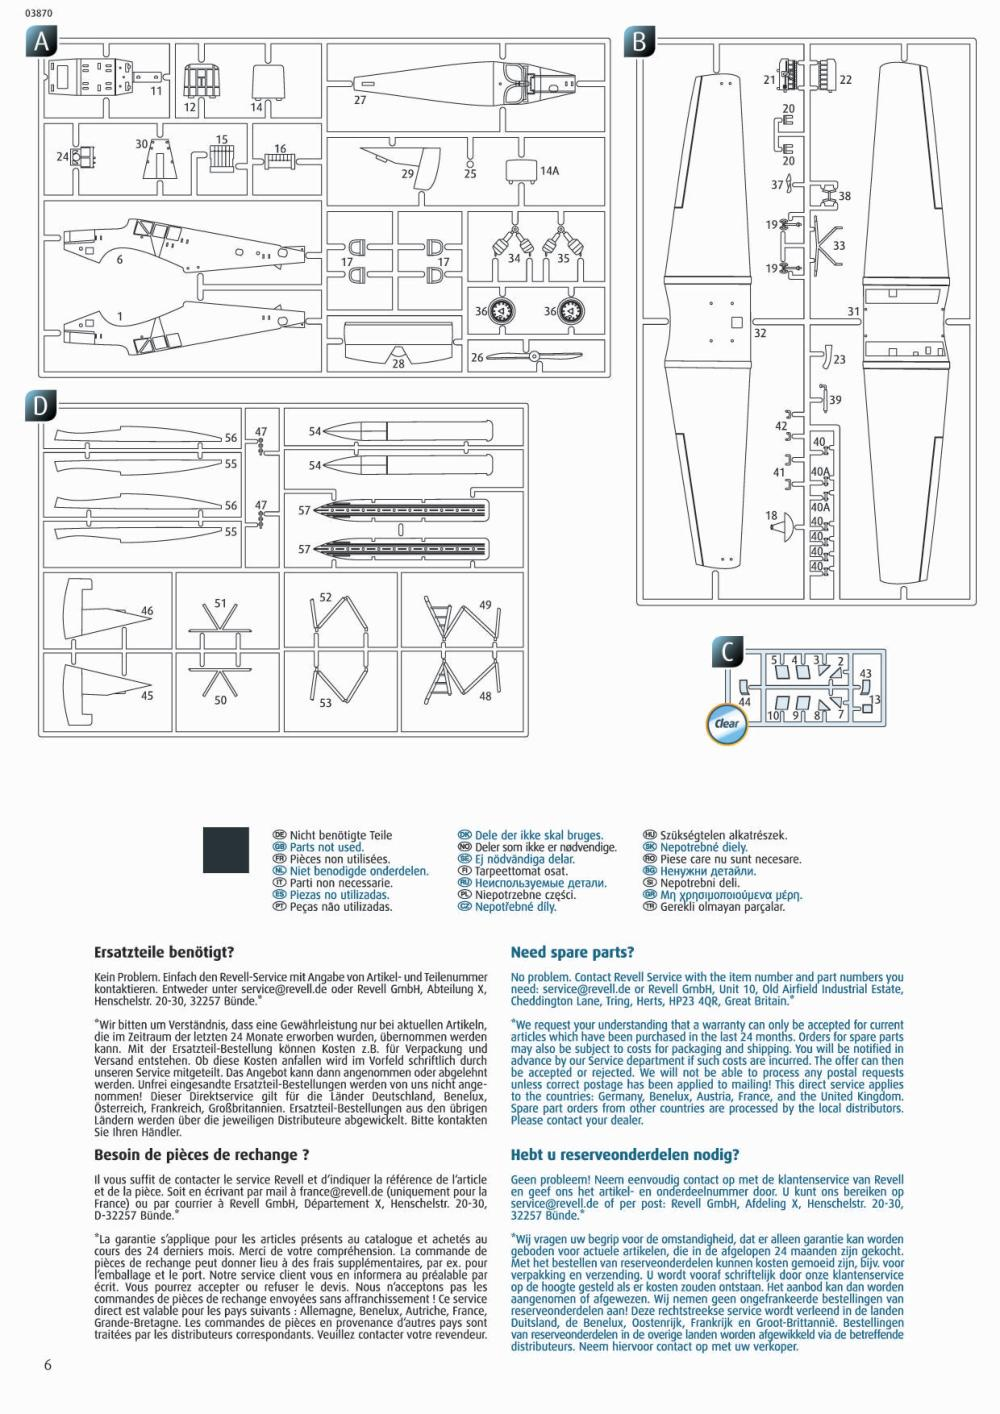 Revell-03870-Junkers-F.13-Bauanleitung4 Junkers F 13 in 1:72 von Revell # 03870